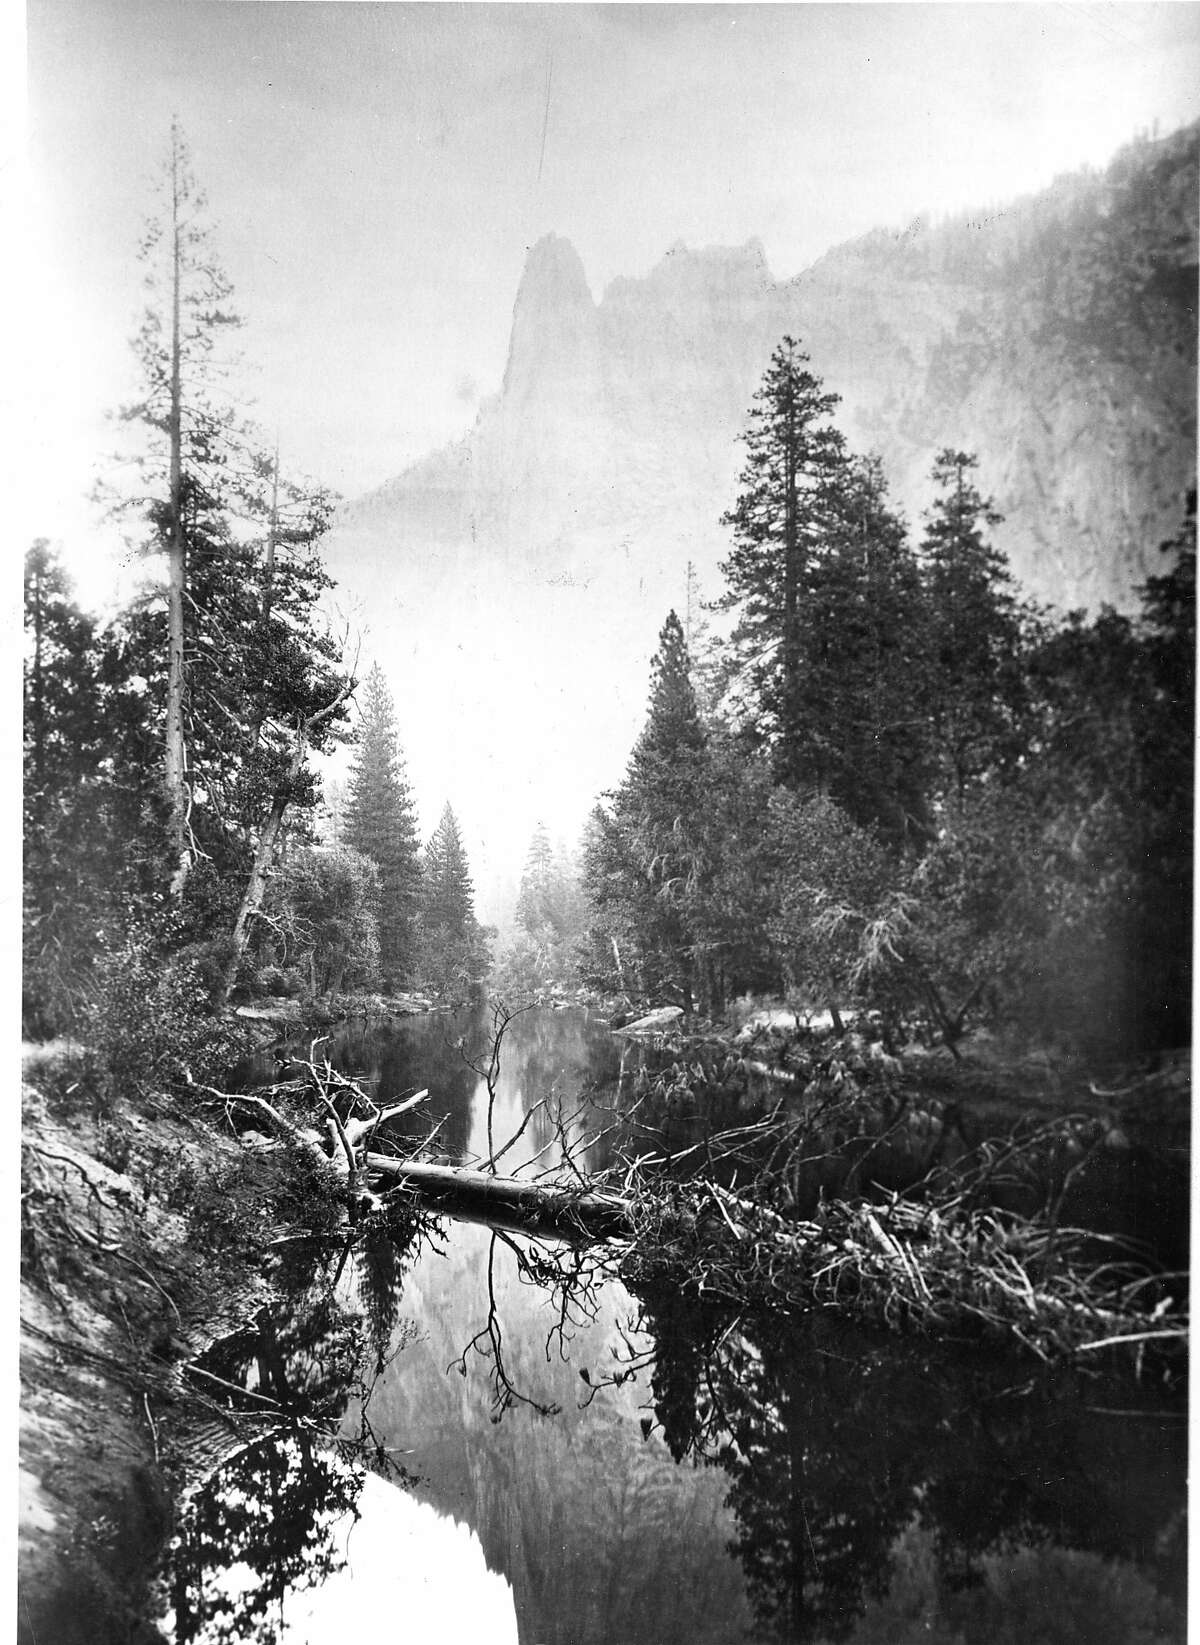 The Sentinel, in Yosemite National Park across the Merced River Photo by Carleton Watkins, approx,. date 1861